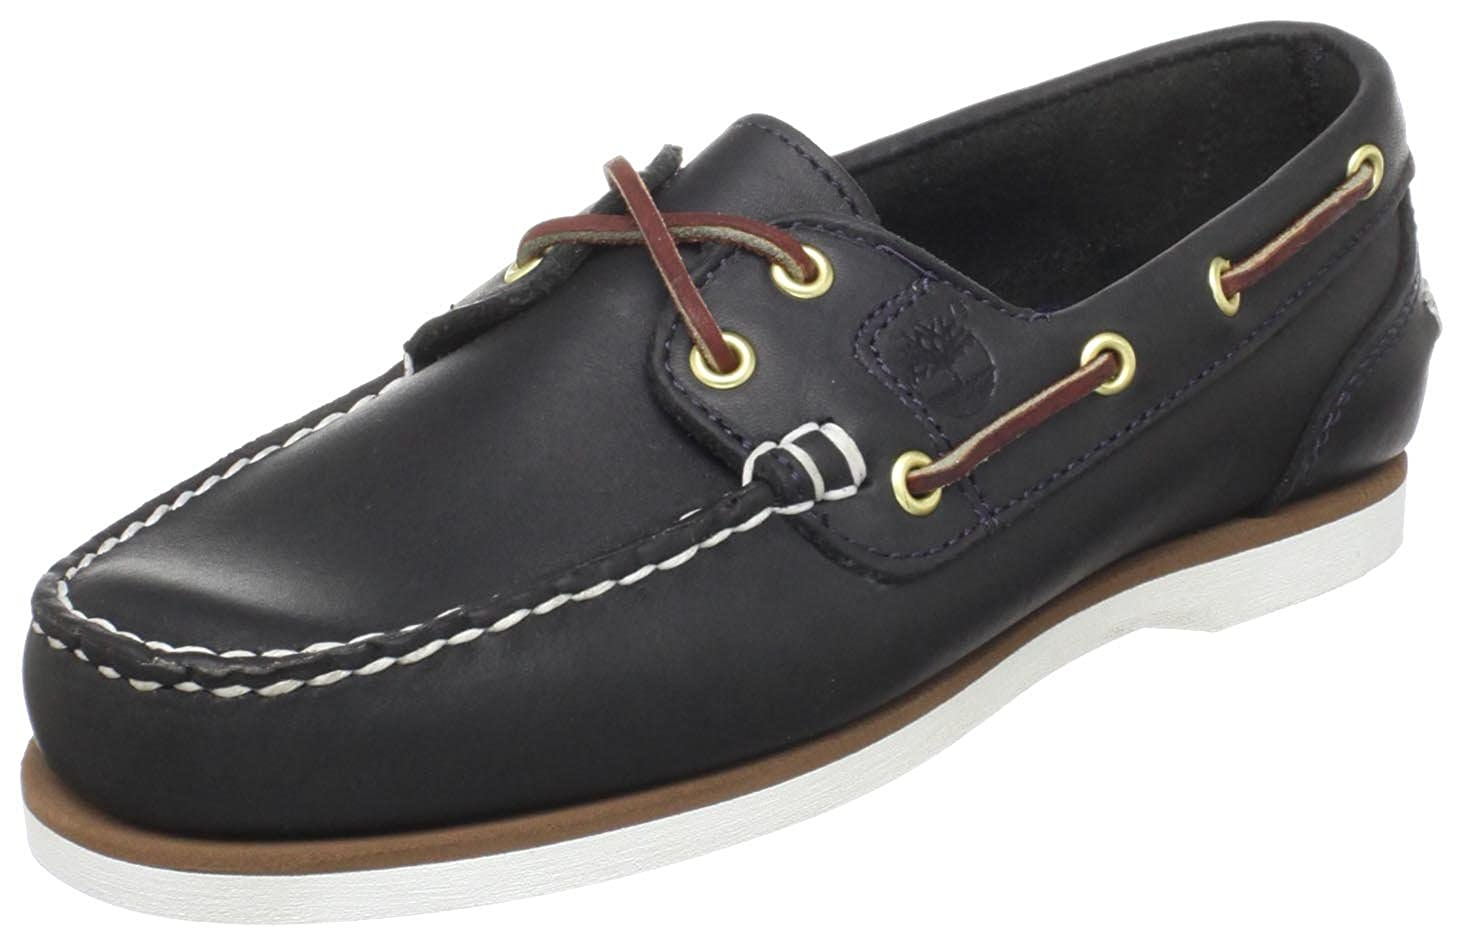 282f2fcf Amazon.com | Timberland Women's Amherst Boat Shoe | Loafers & Slip-Ons